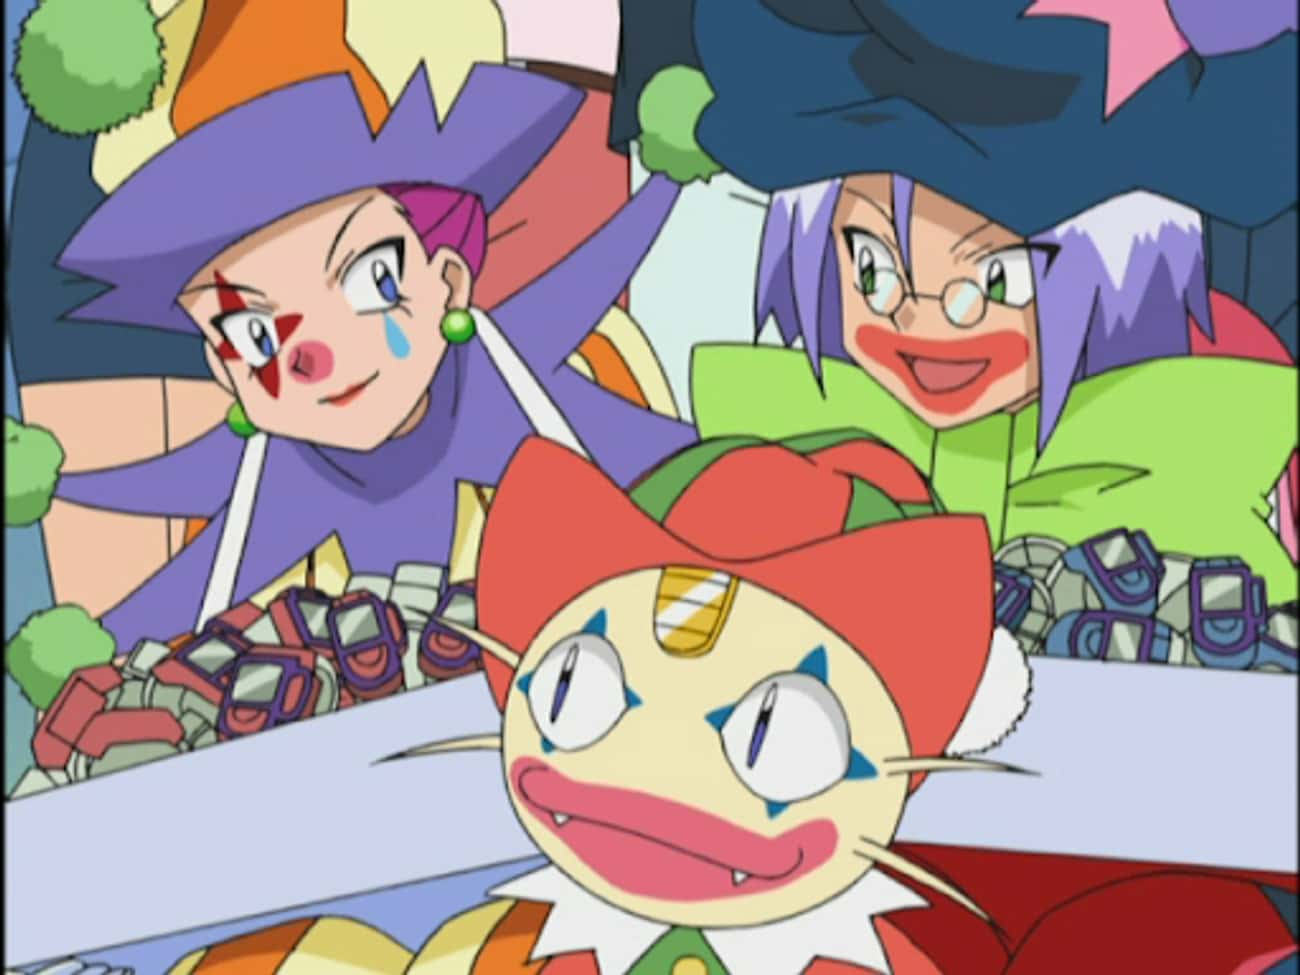 Team Rocket - 'Pokemon' is listed (or ranked) 2 on the list The 14 Funniest Anime Villains of All Time